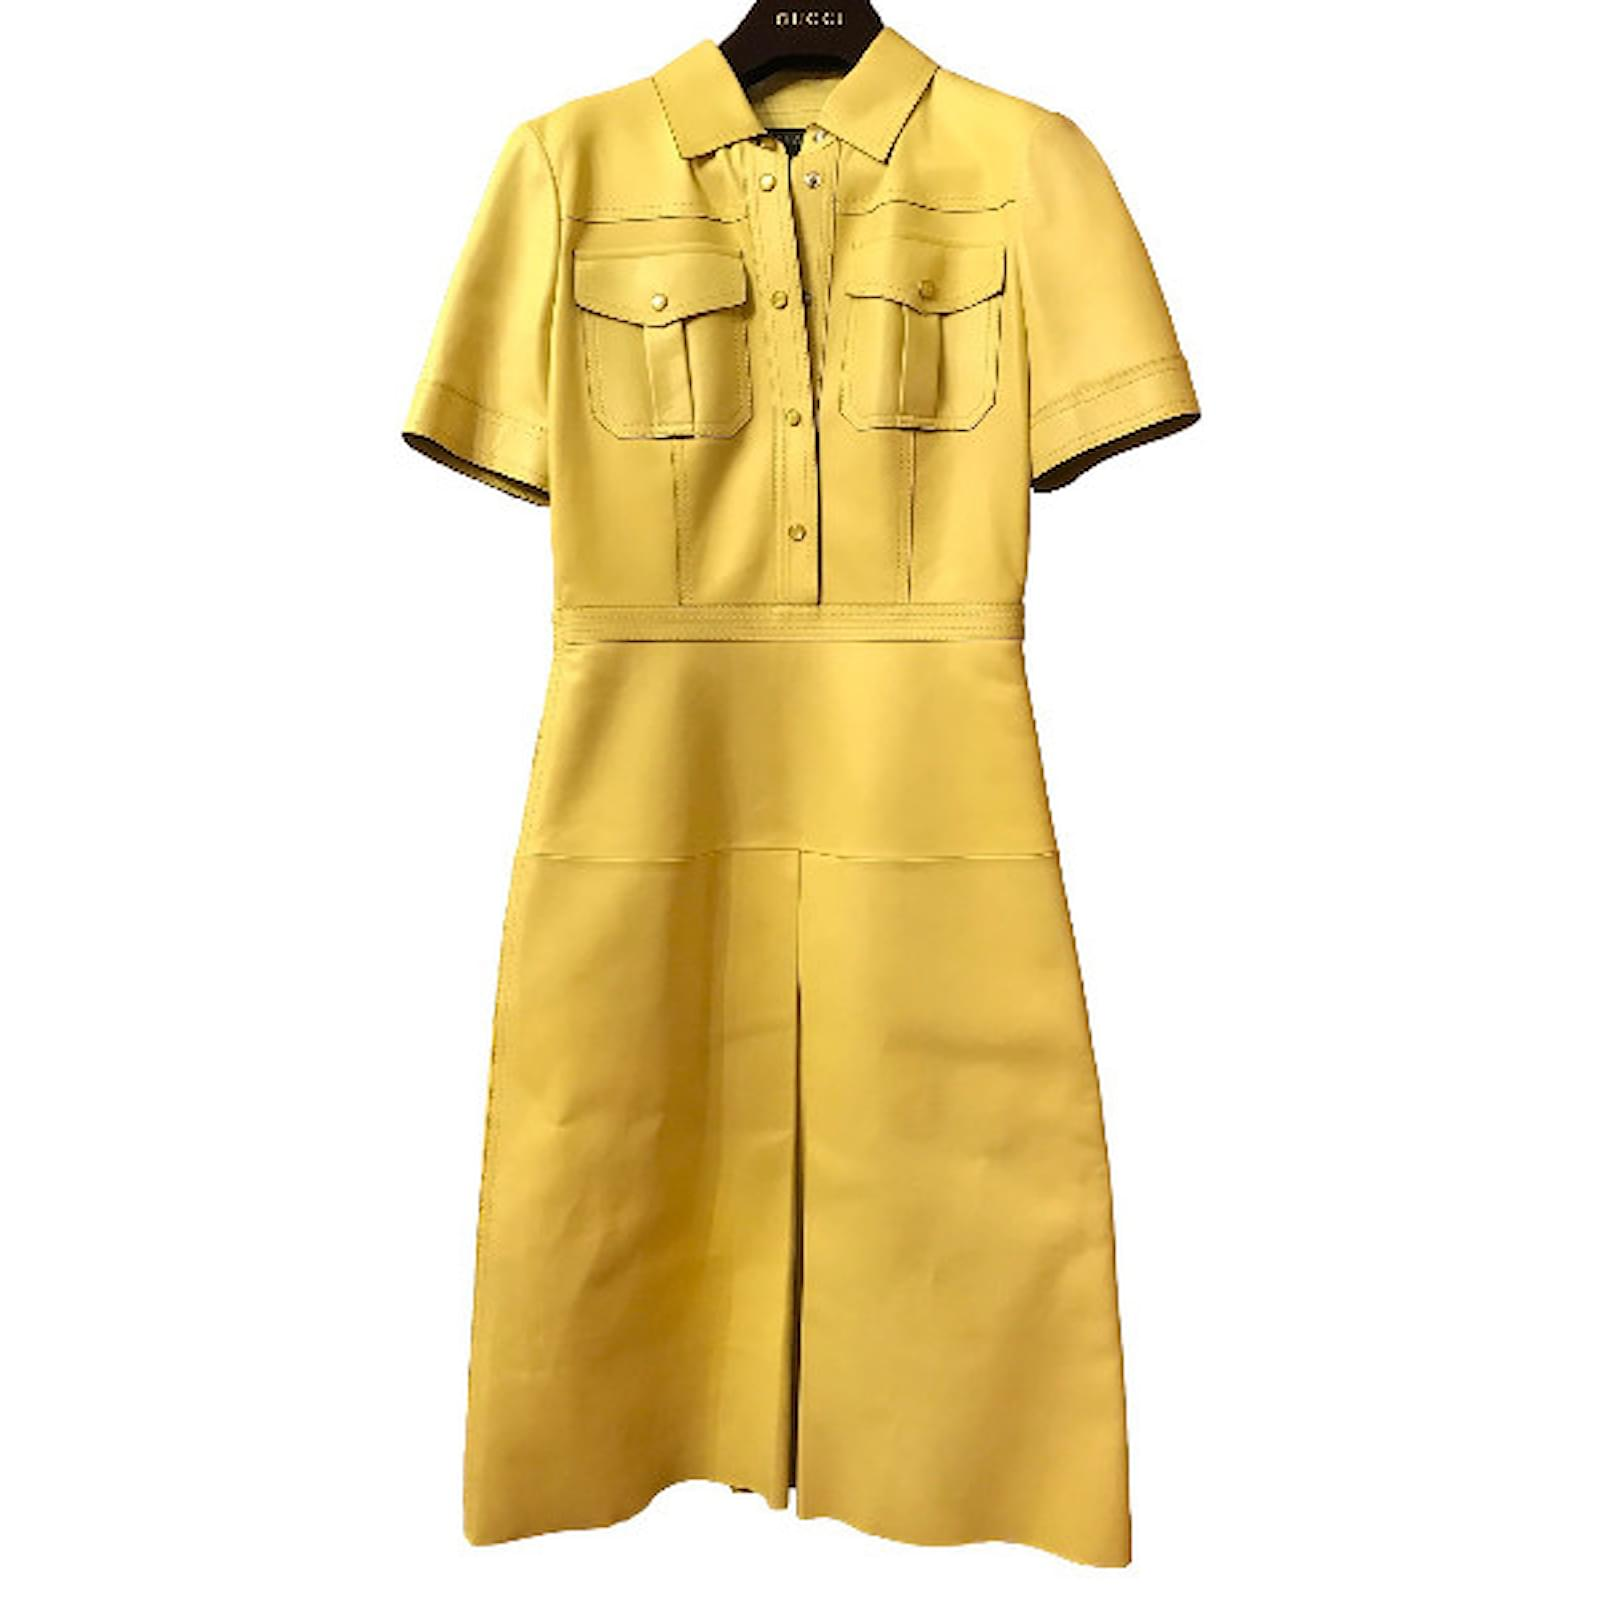 Gucci Gucci leather dress size IT40 Dresses Leather Yellow ref.34964